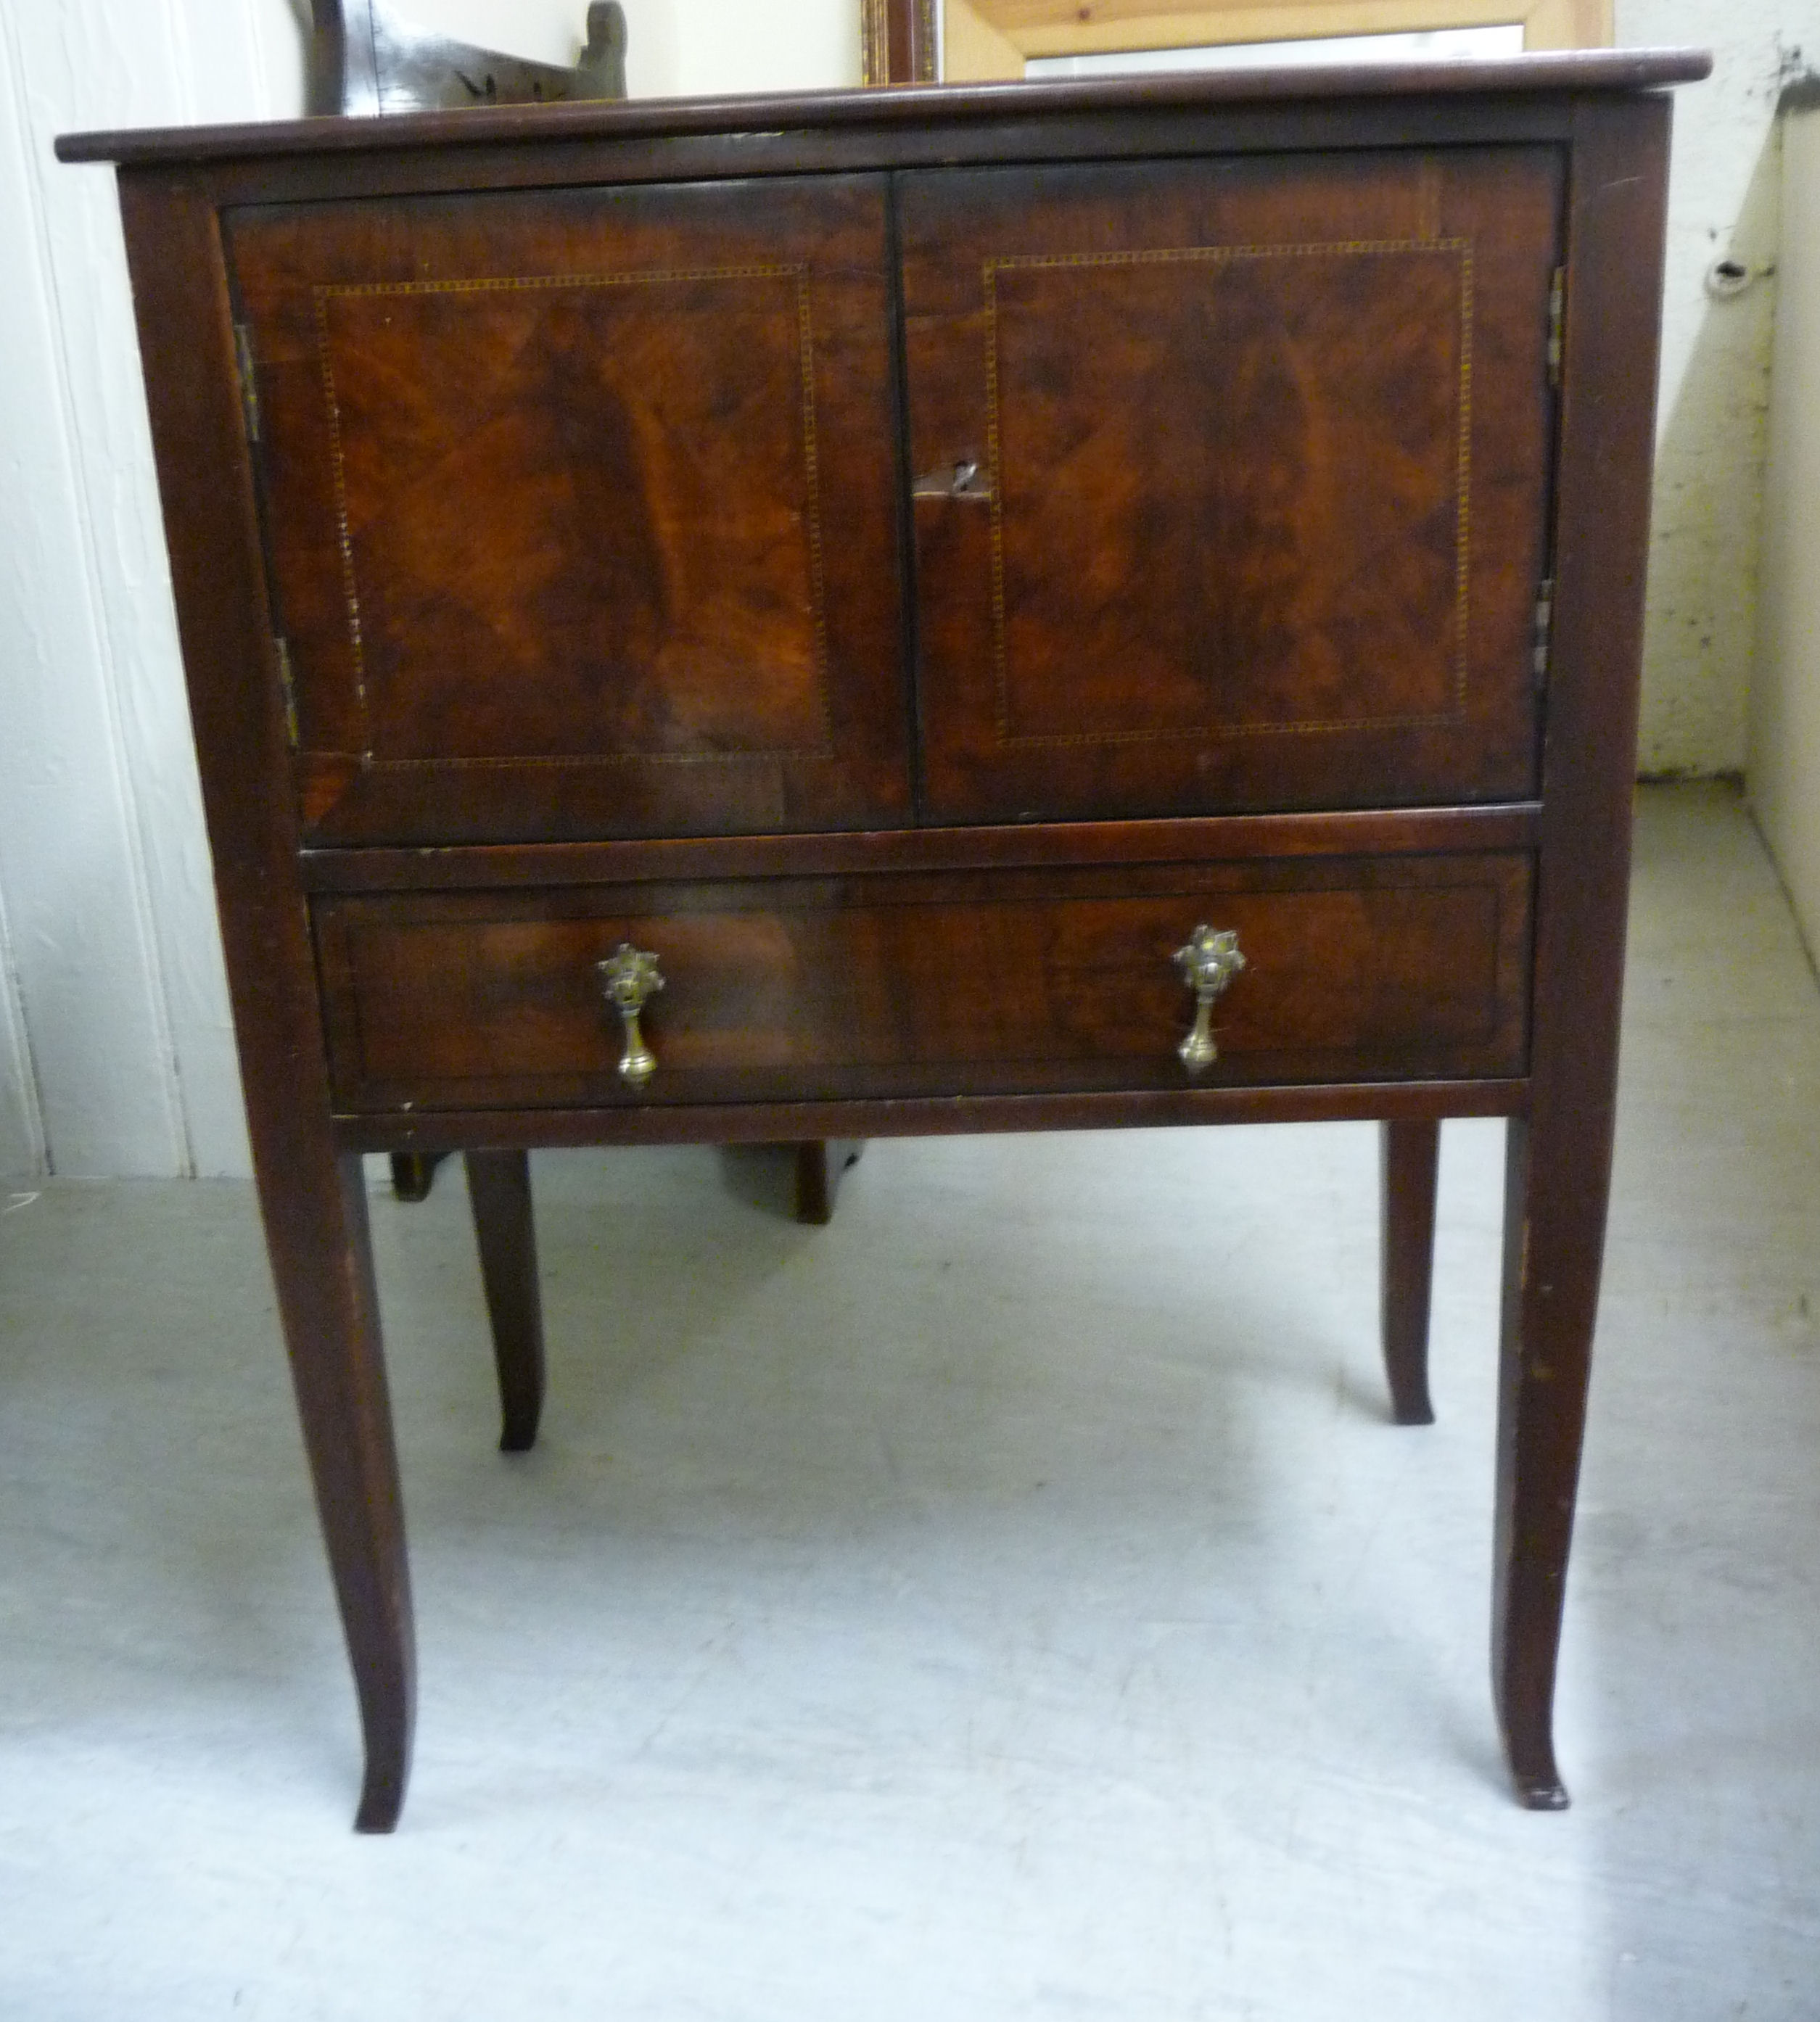 Lot 44 - An Edwardian inlaid and crossbanded mahogany cabinet with a shelf top,